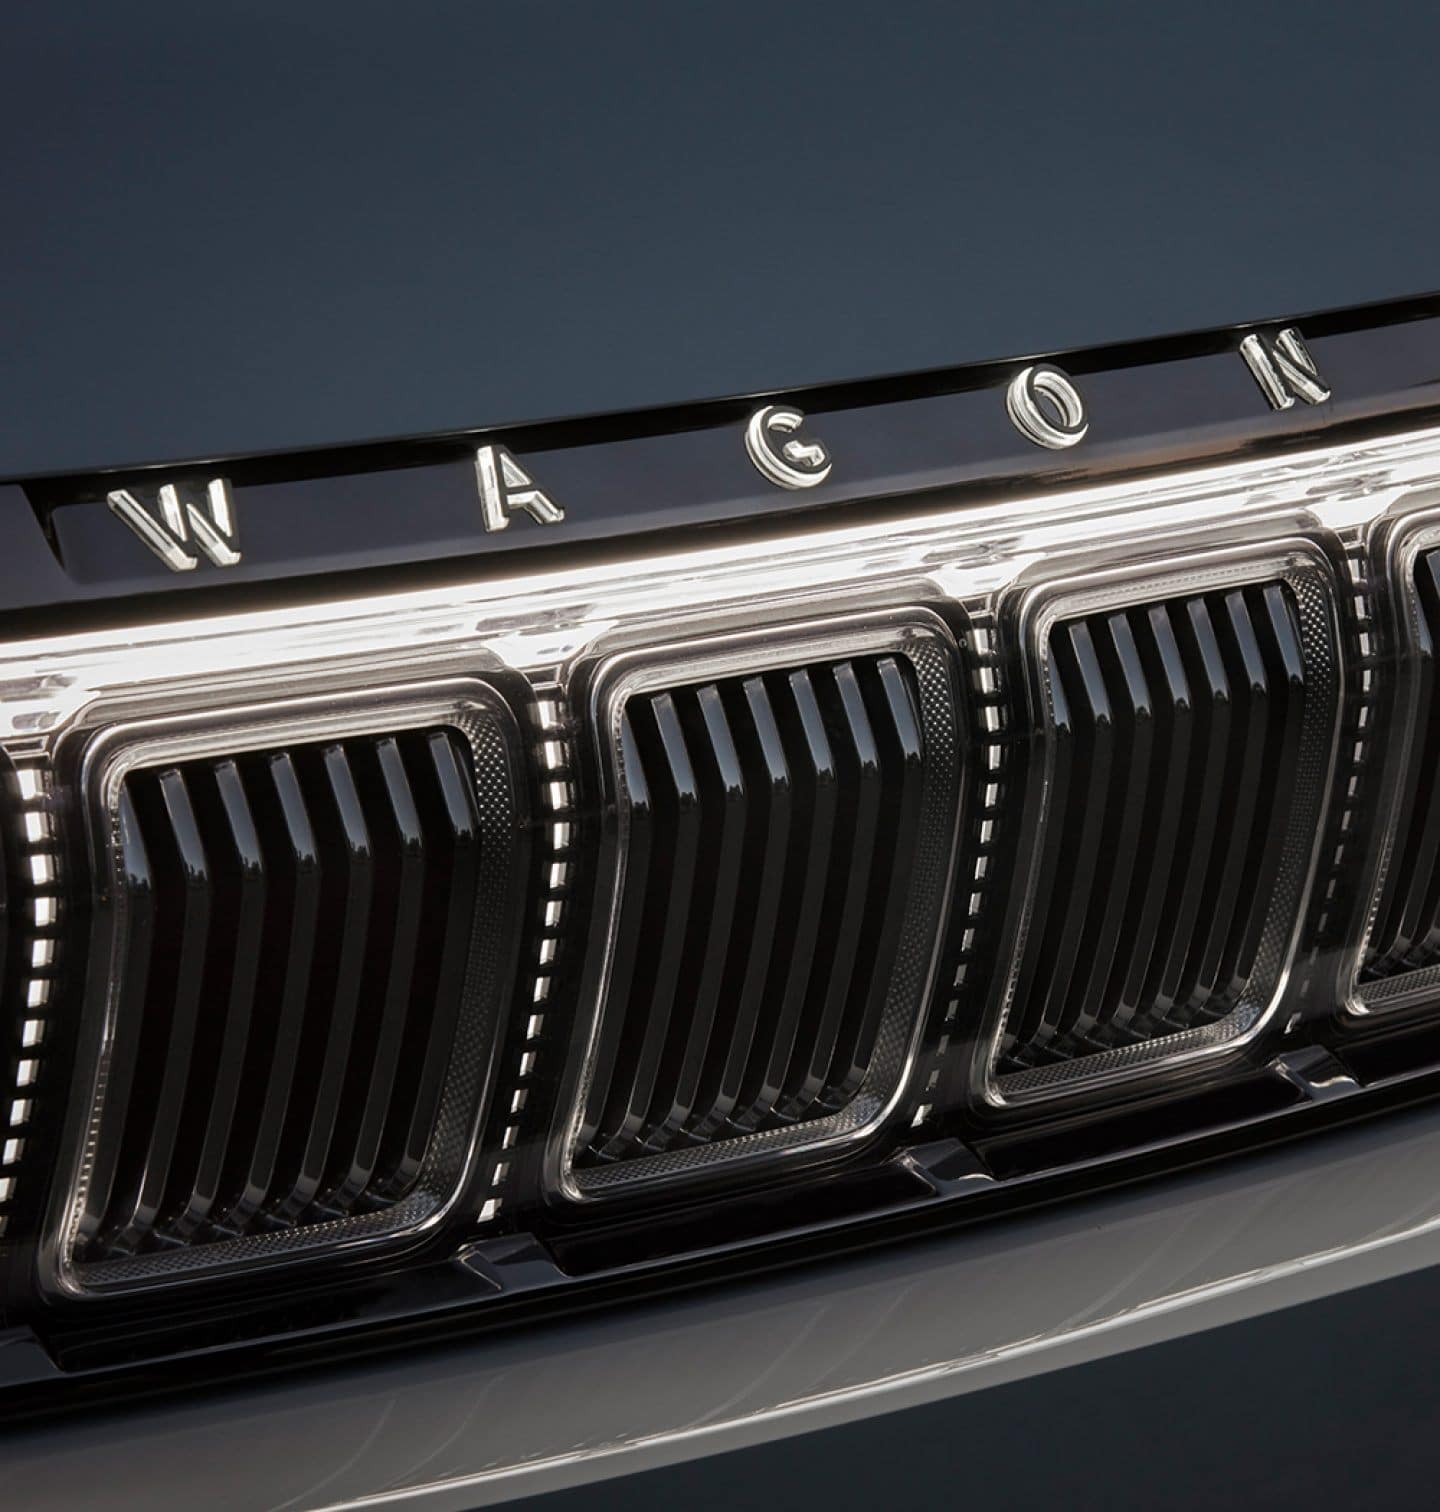 2021 Grand Wagoneer Ultra-Premium